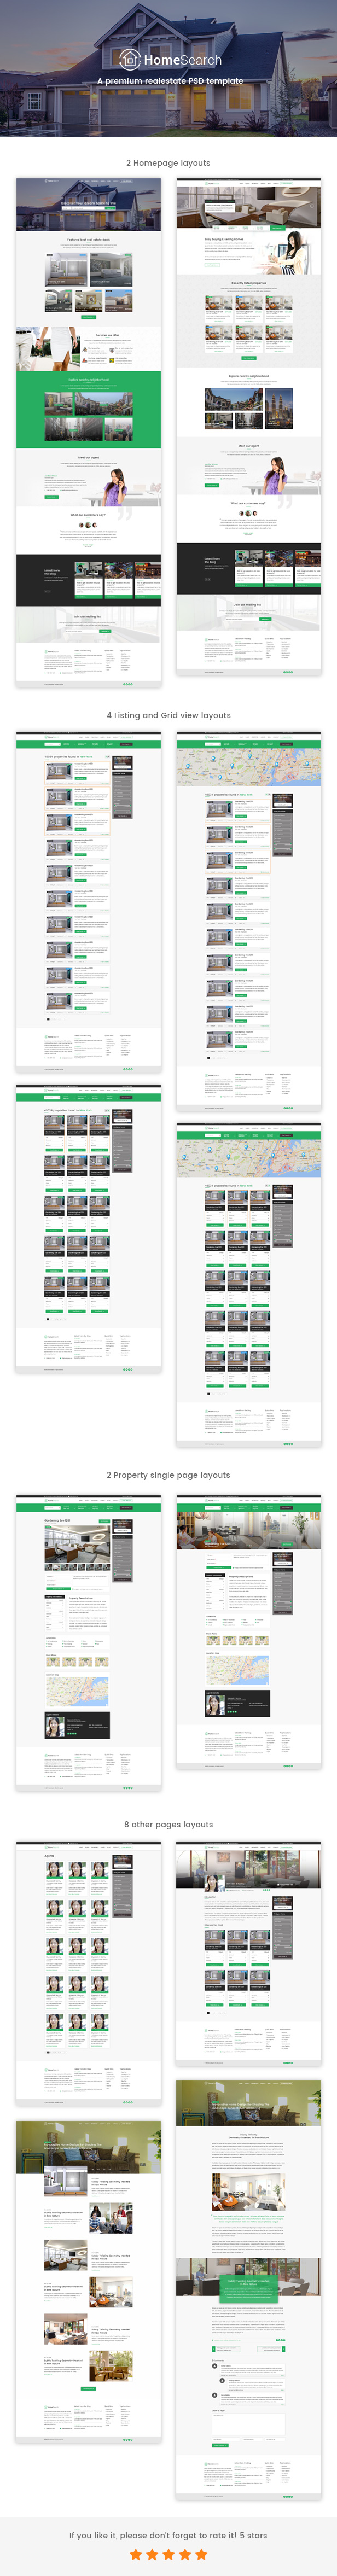 HomeSearch - A RealEstate HTML5 Template - 1